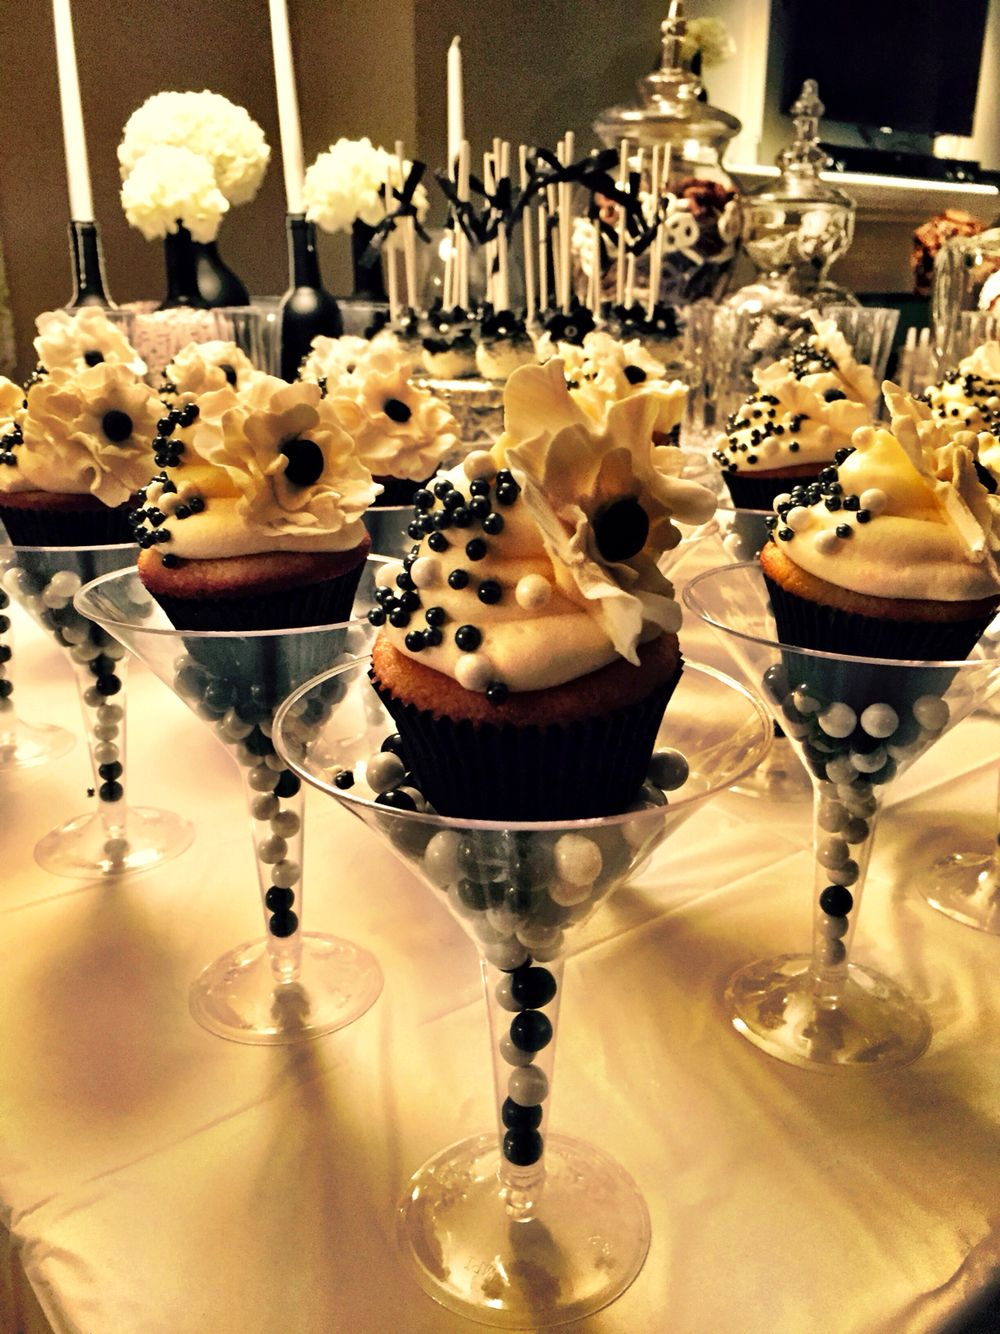 Cupcakes In Martini Glasses Lush Ious Cupcakes In 2019